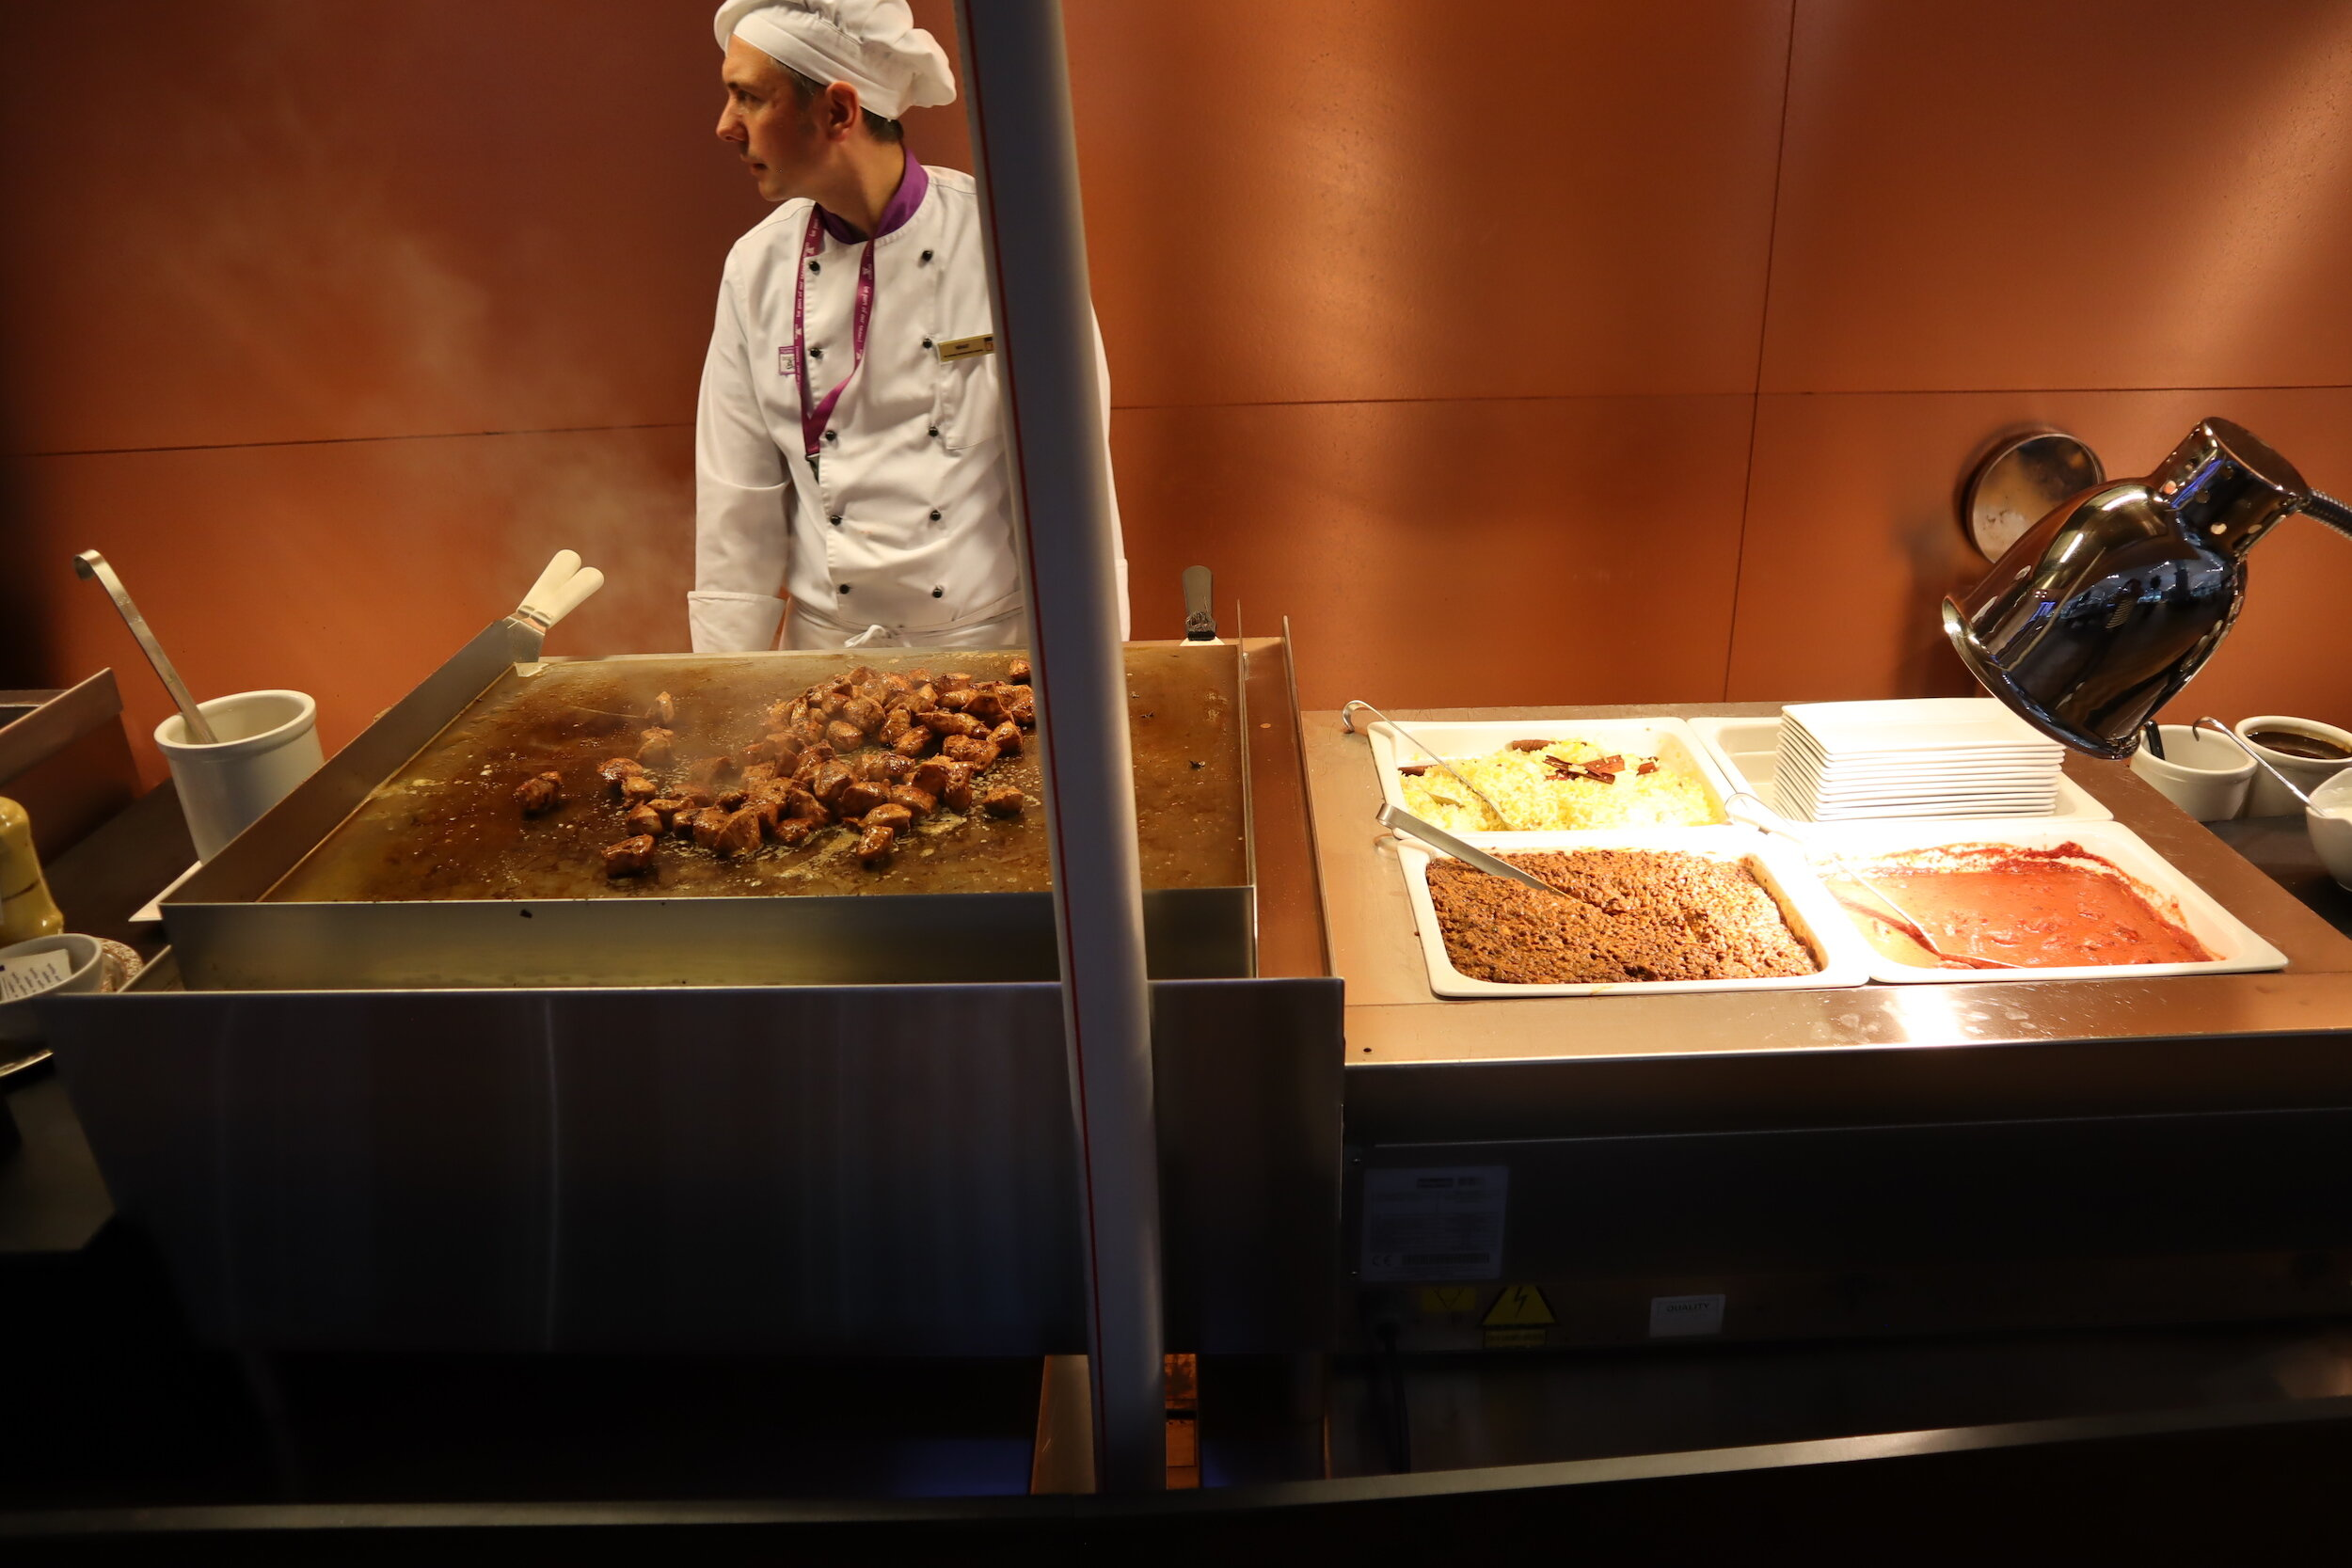 Turkish Airlines Business Lounge Istanbul – Iskender station